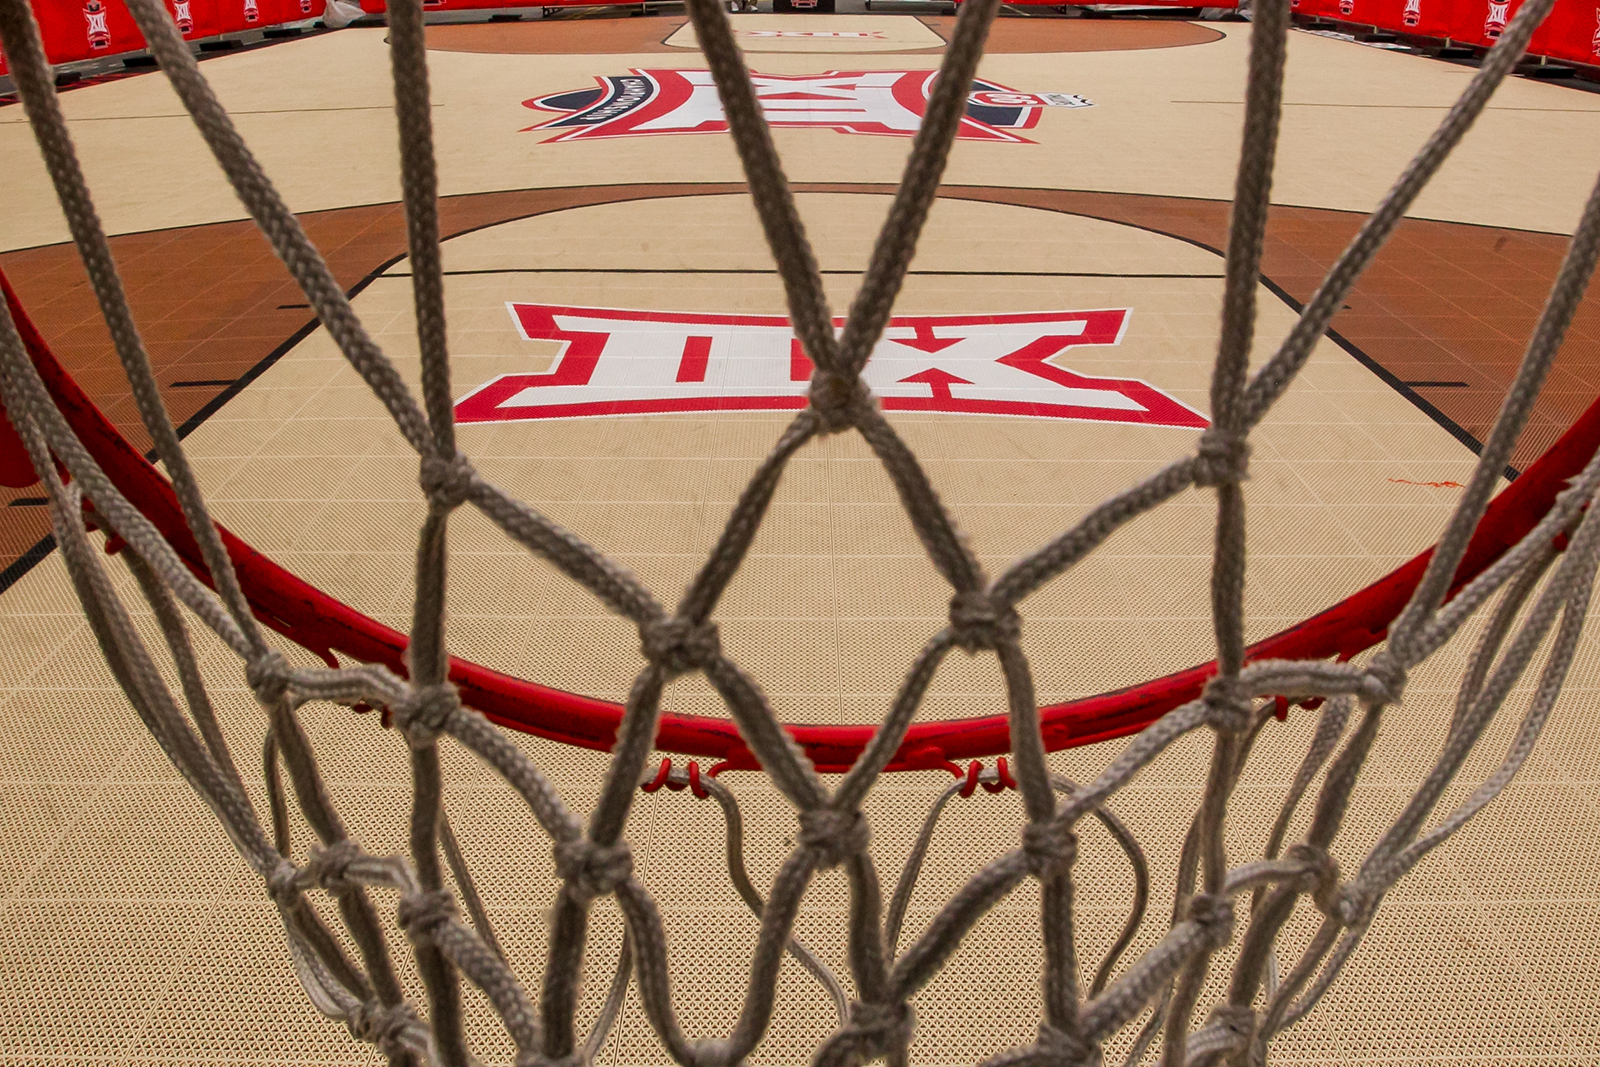 An open basketball court apart of the Big 12 fan experience sits empty due to the cancellation of the Big 12 Tournament to prevent the spread of the Coronavirus (COVID-19) prior to the game between the Texas Tech Red Raiders and the Texas Longhorns, at the Sprint Center in Kansas City, Missouri, on March 12.